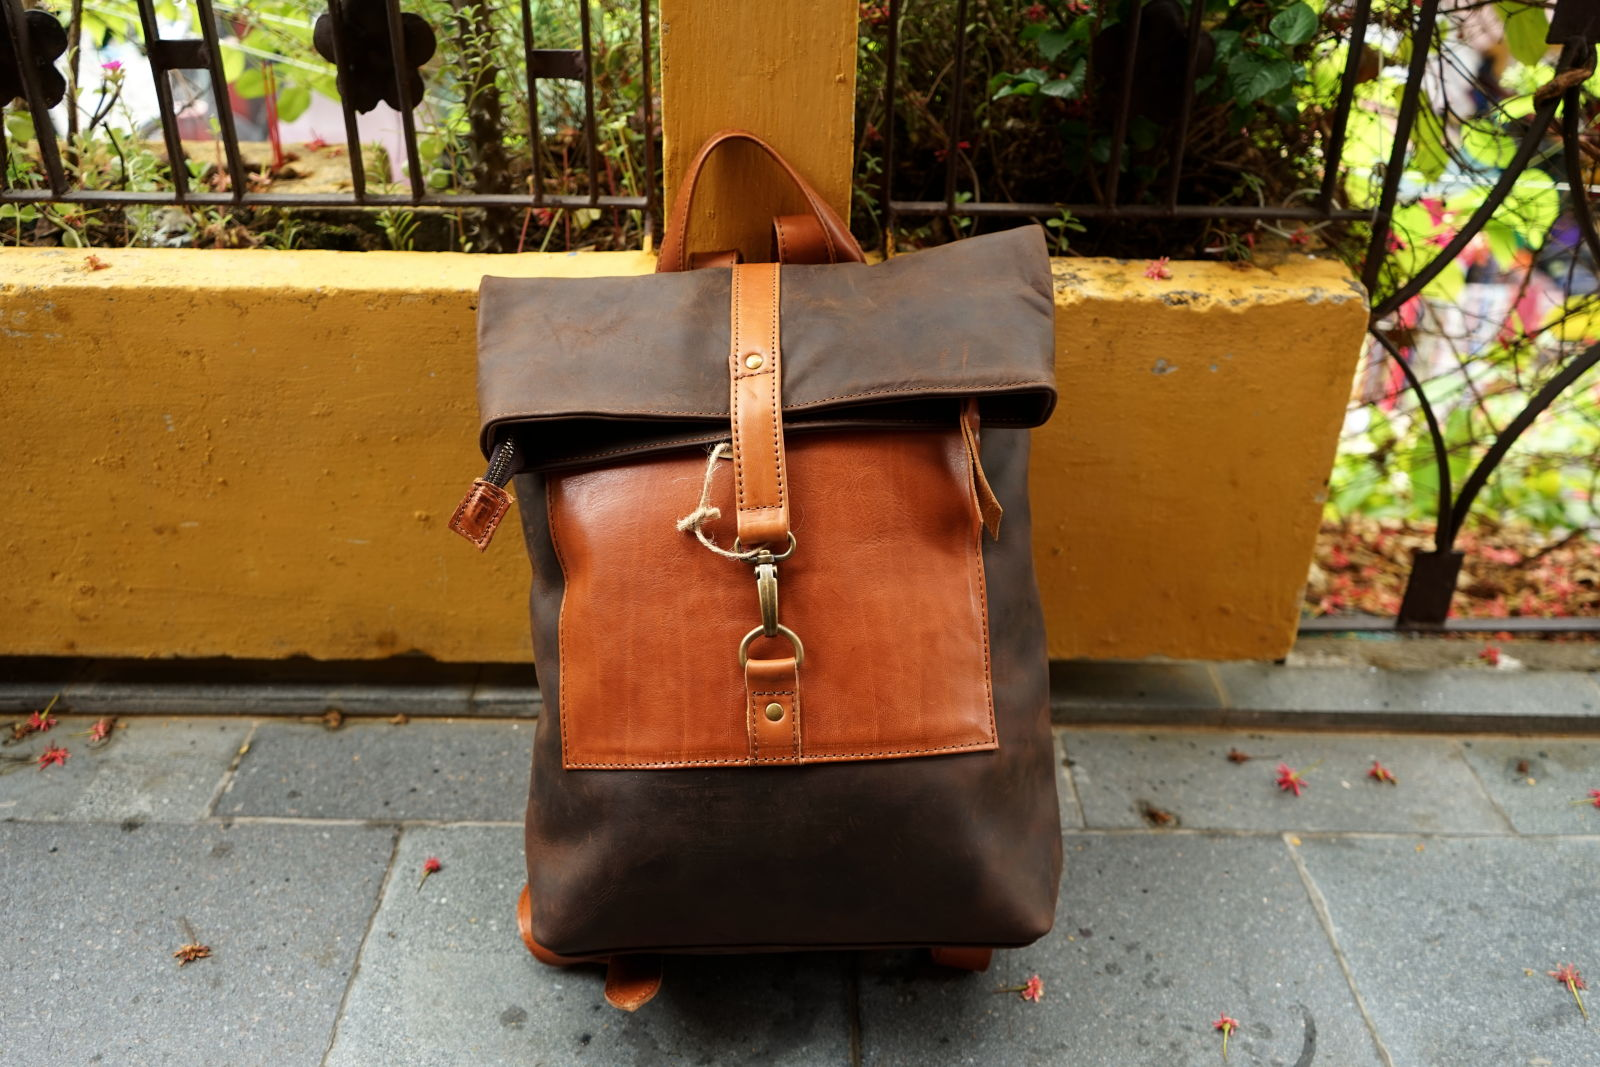 Hoi An Real Leather - Da Bao Real Leather: Multicolor Messenger Backpack. Light and dark brown, made of buffalo leather. Closing with a metal buckle and a zipper.